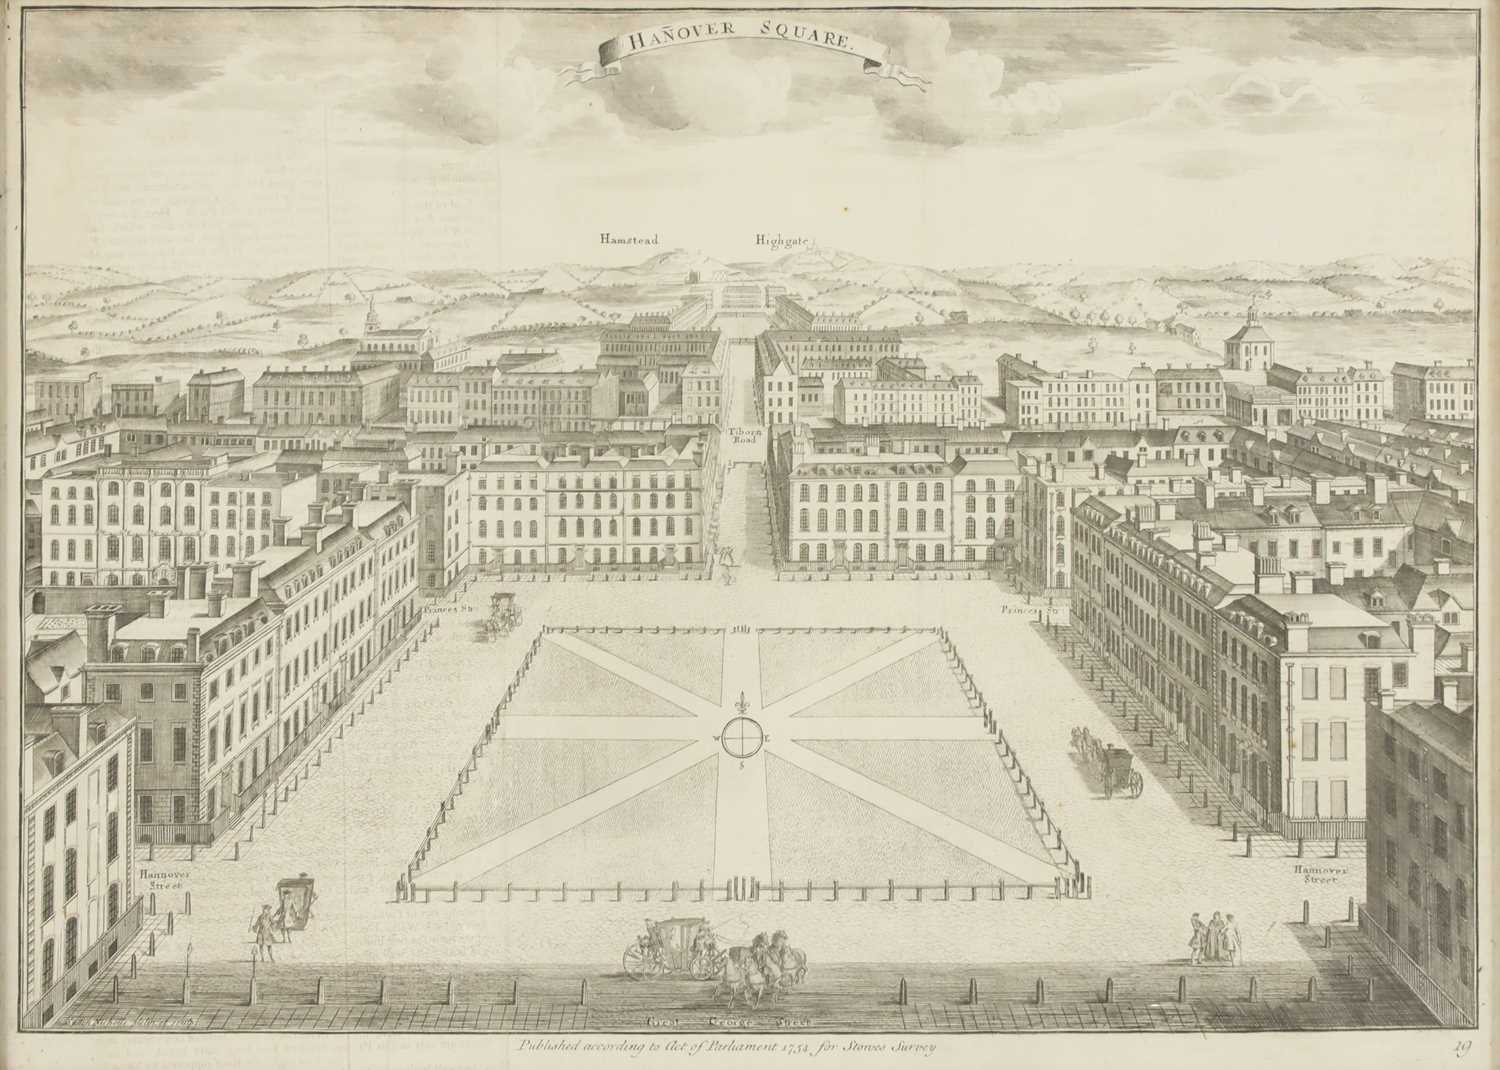 ST CHRISTOPHER'S CHURCH, THE BANK OF ENGLAND AND ST BARTHOLOMEW'S CHURCH - Image 2 of 4